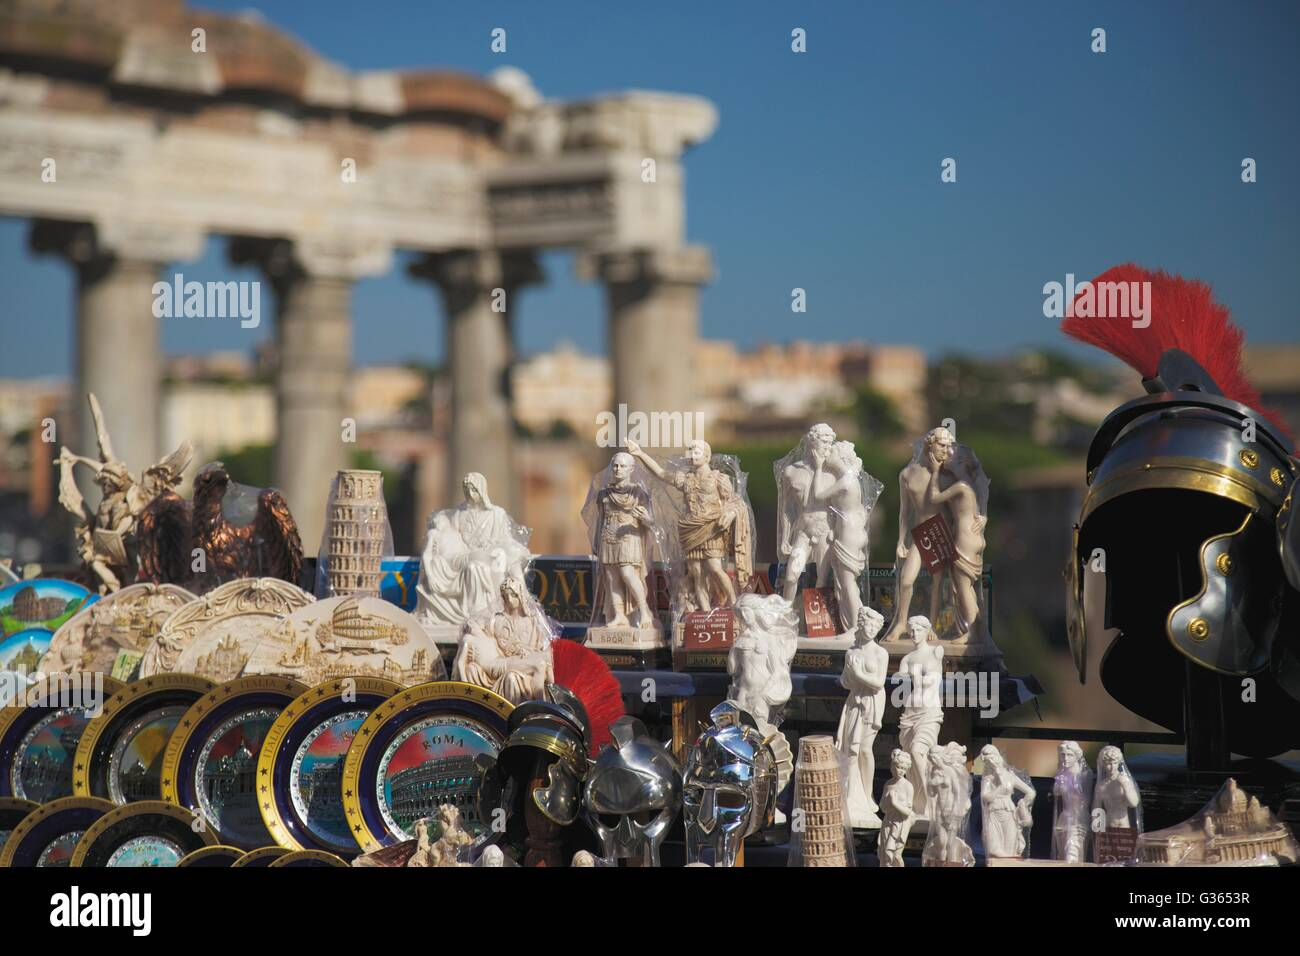 Souvenirs for sale in the Roman Forum, Rome, Italy, Europe - Stock Image